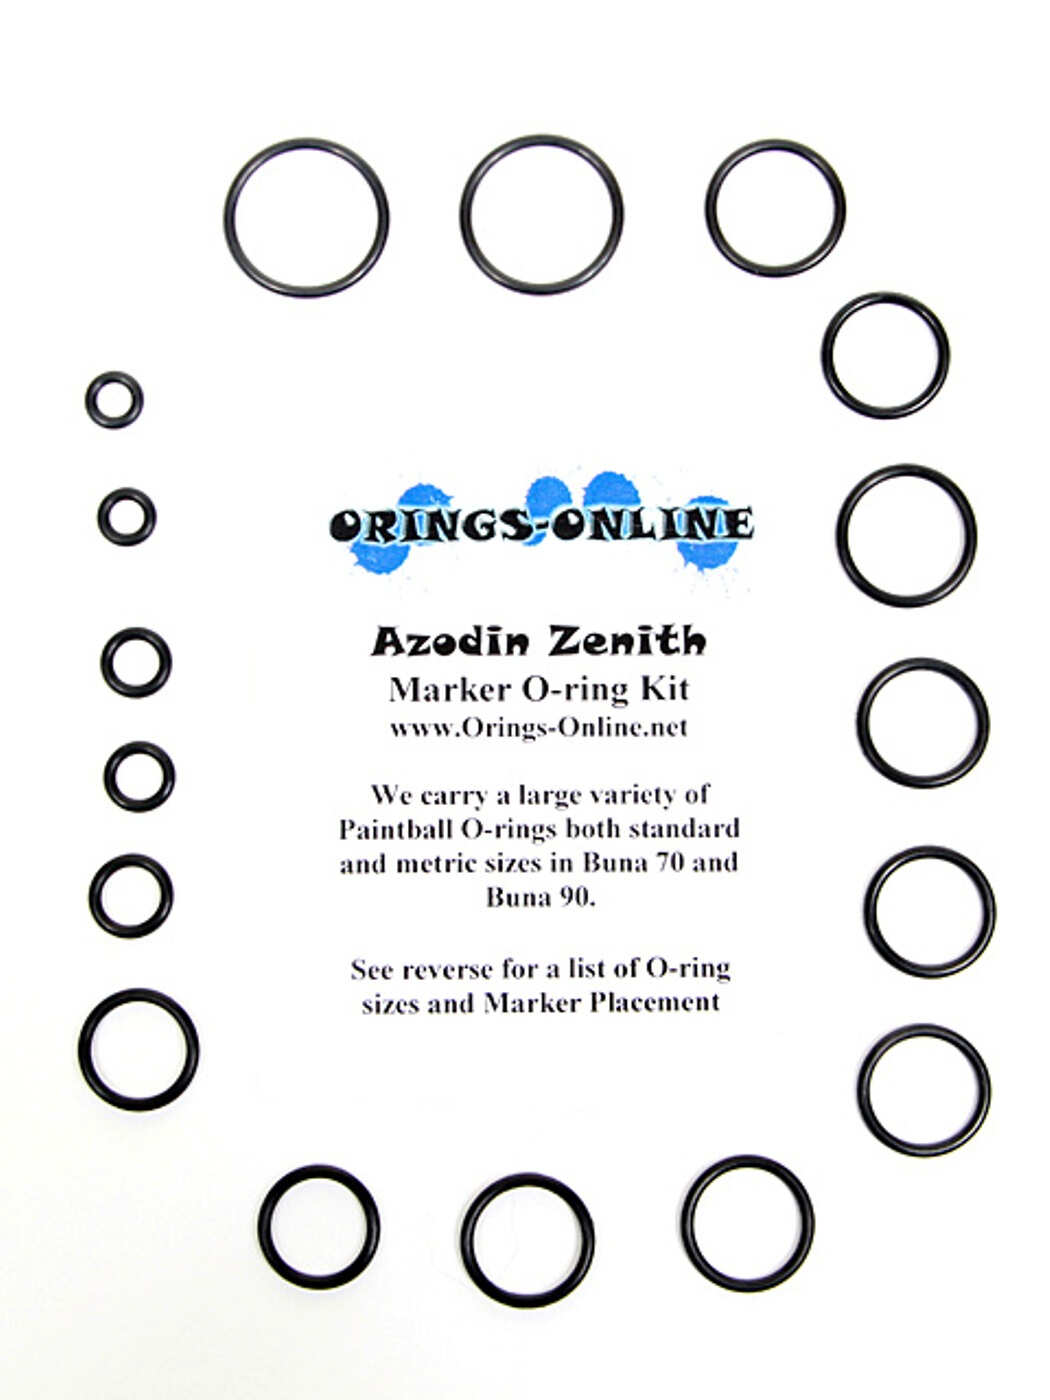 Azodin Zenith Marker O-ring Kit